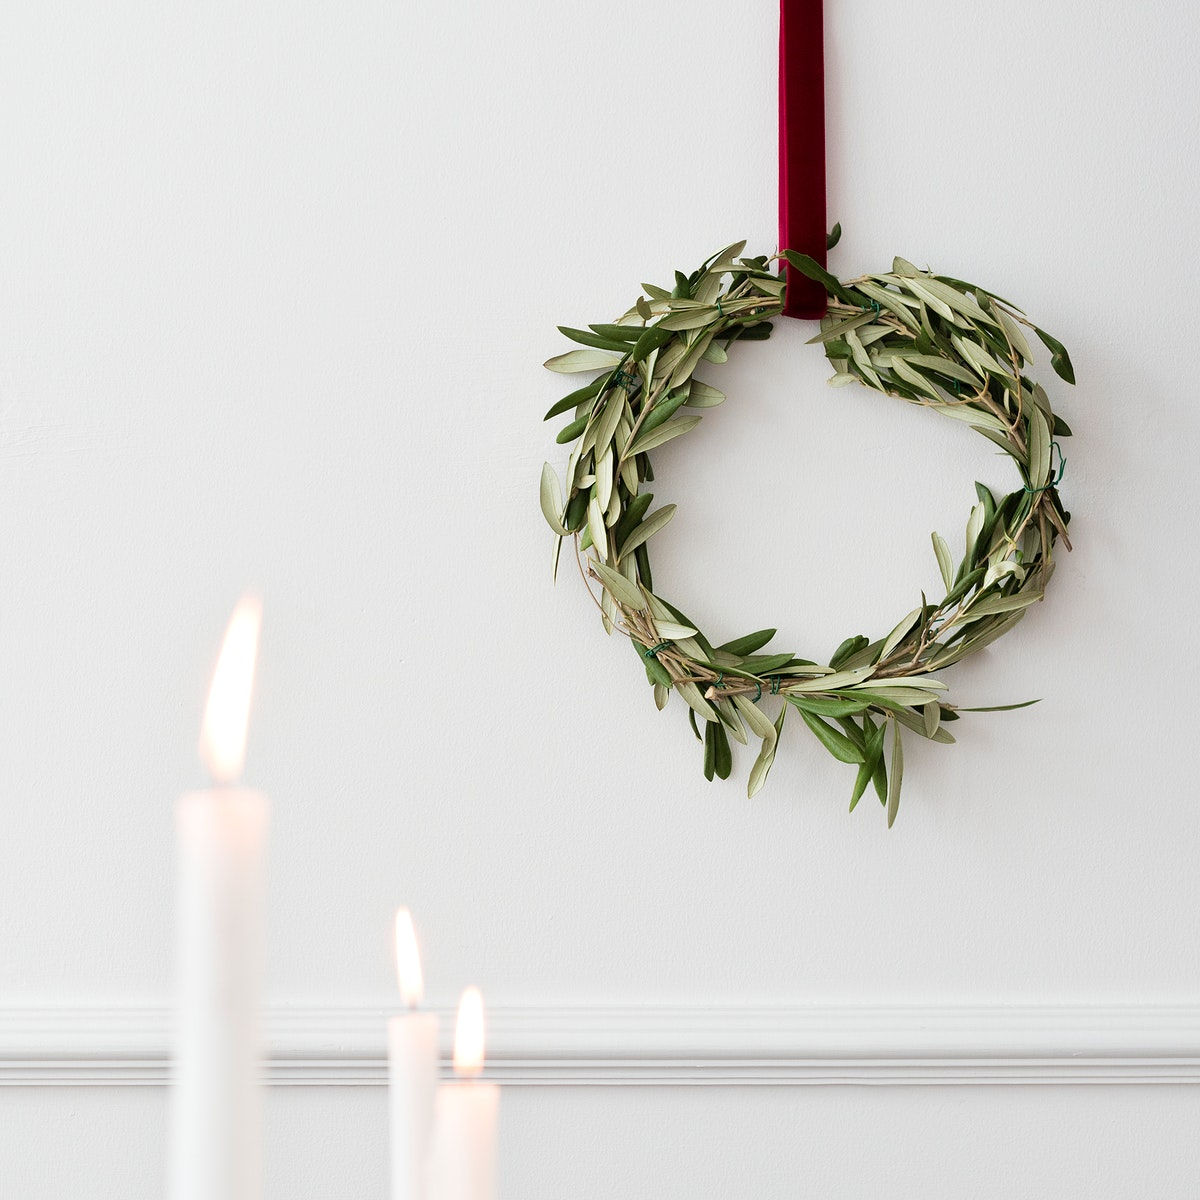 Christmas wreath on a white wall with lighted white pillar candles